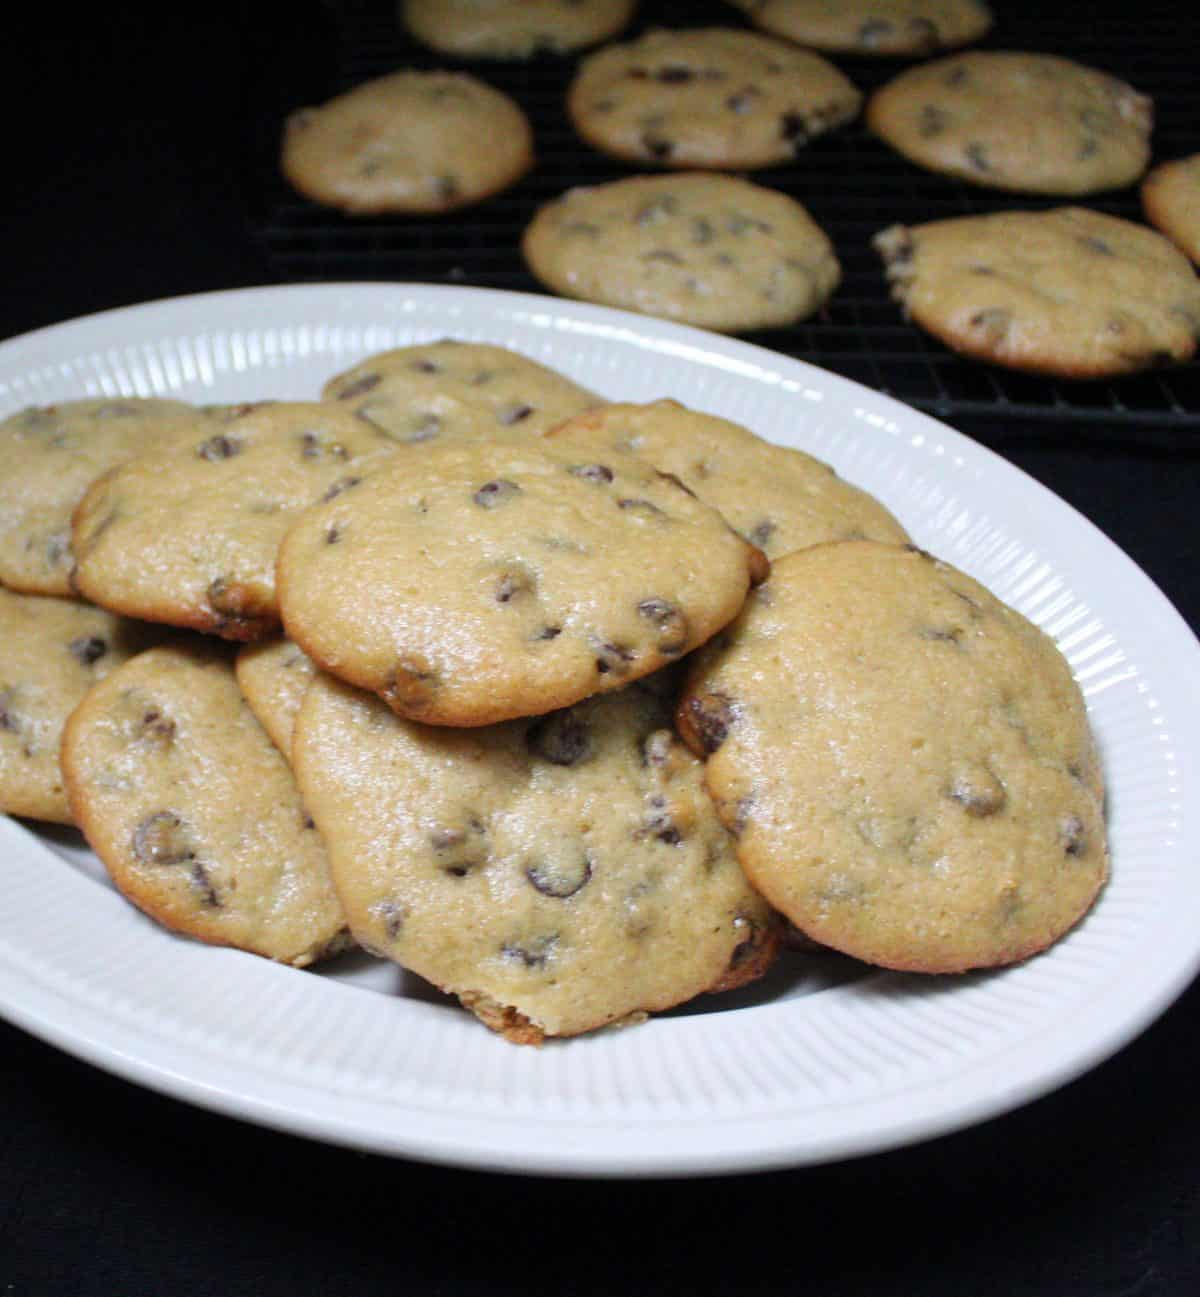 A front shot of a dish piled high with vegan sourdough chocolate chip cookies.